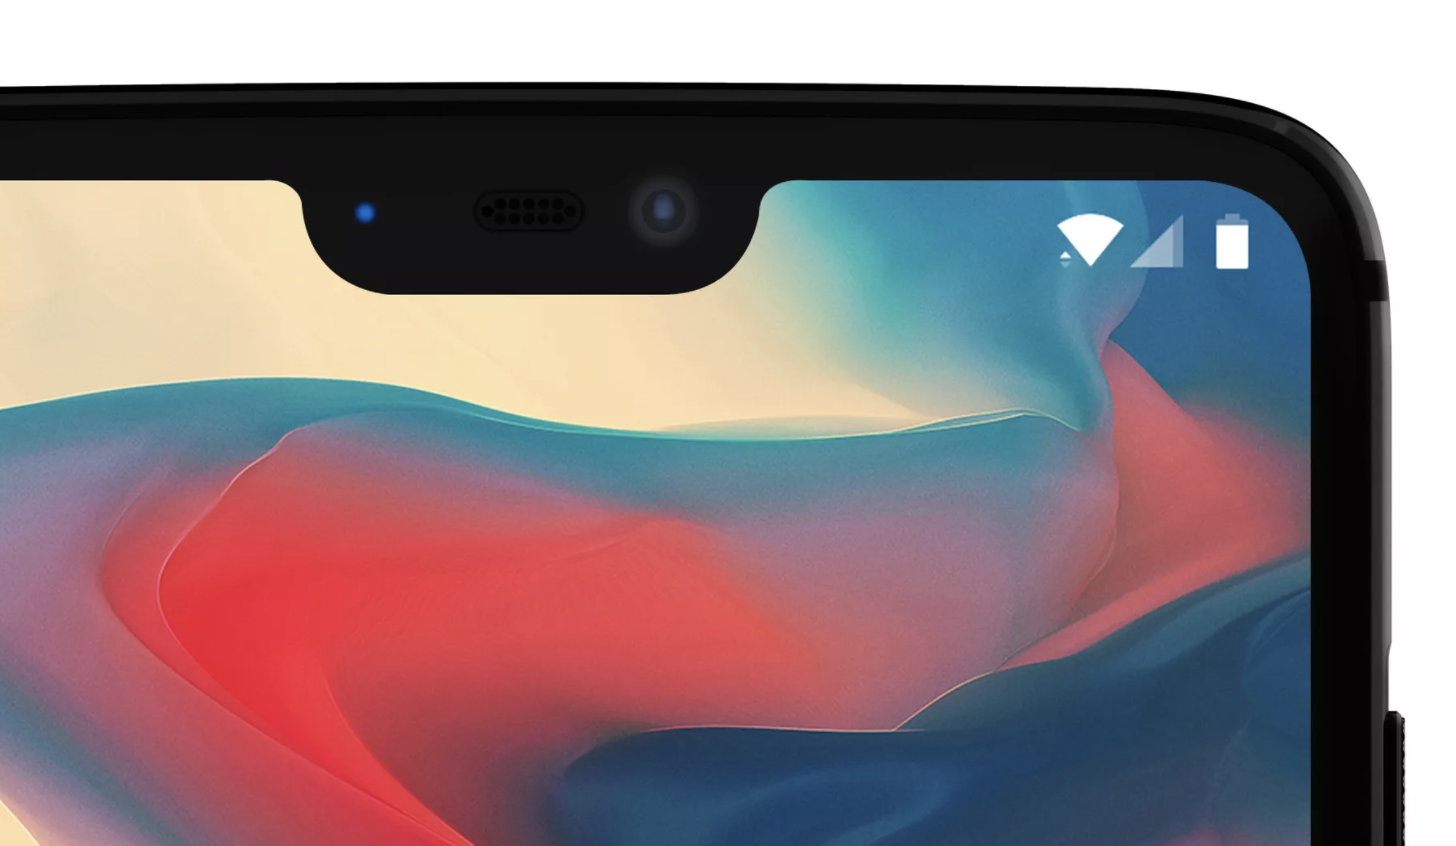 OnePlus 6-notch